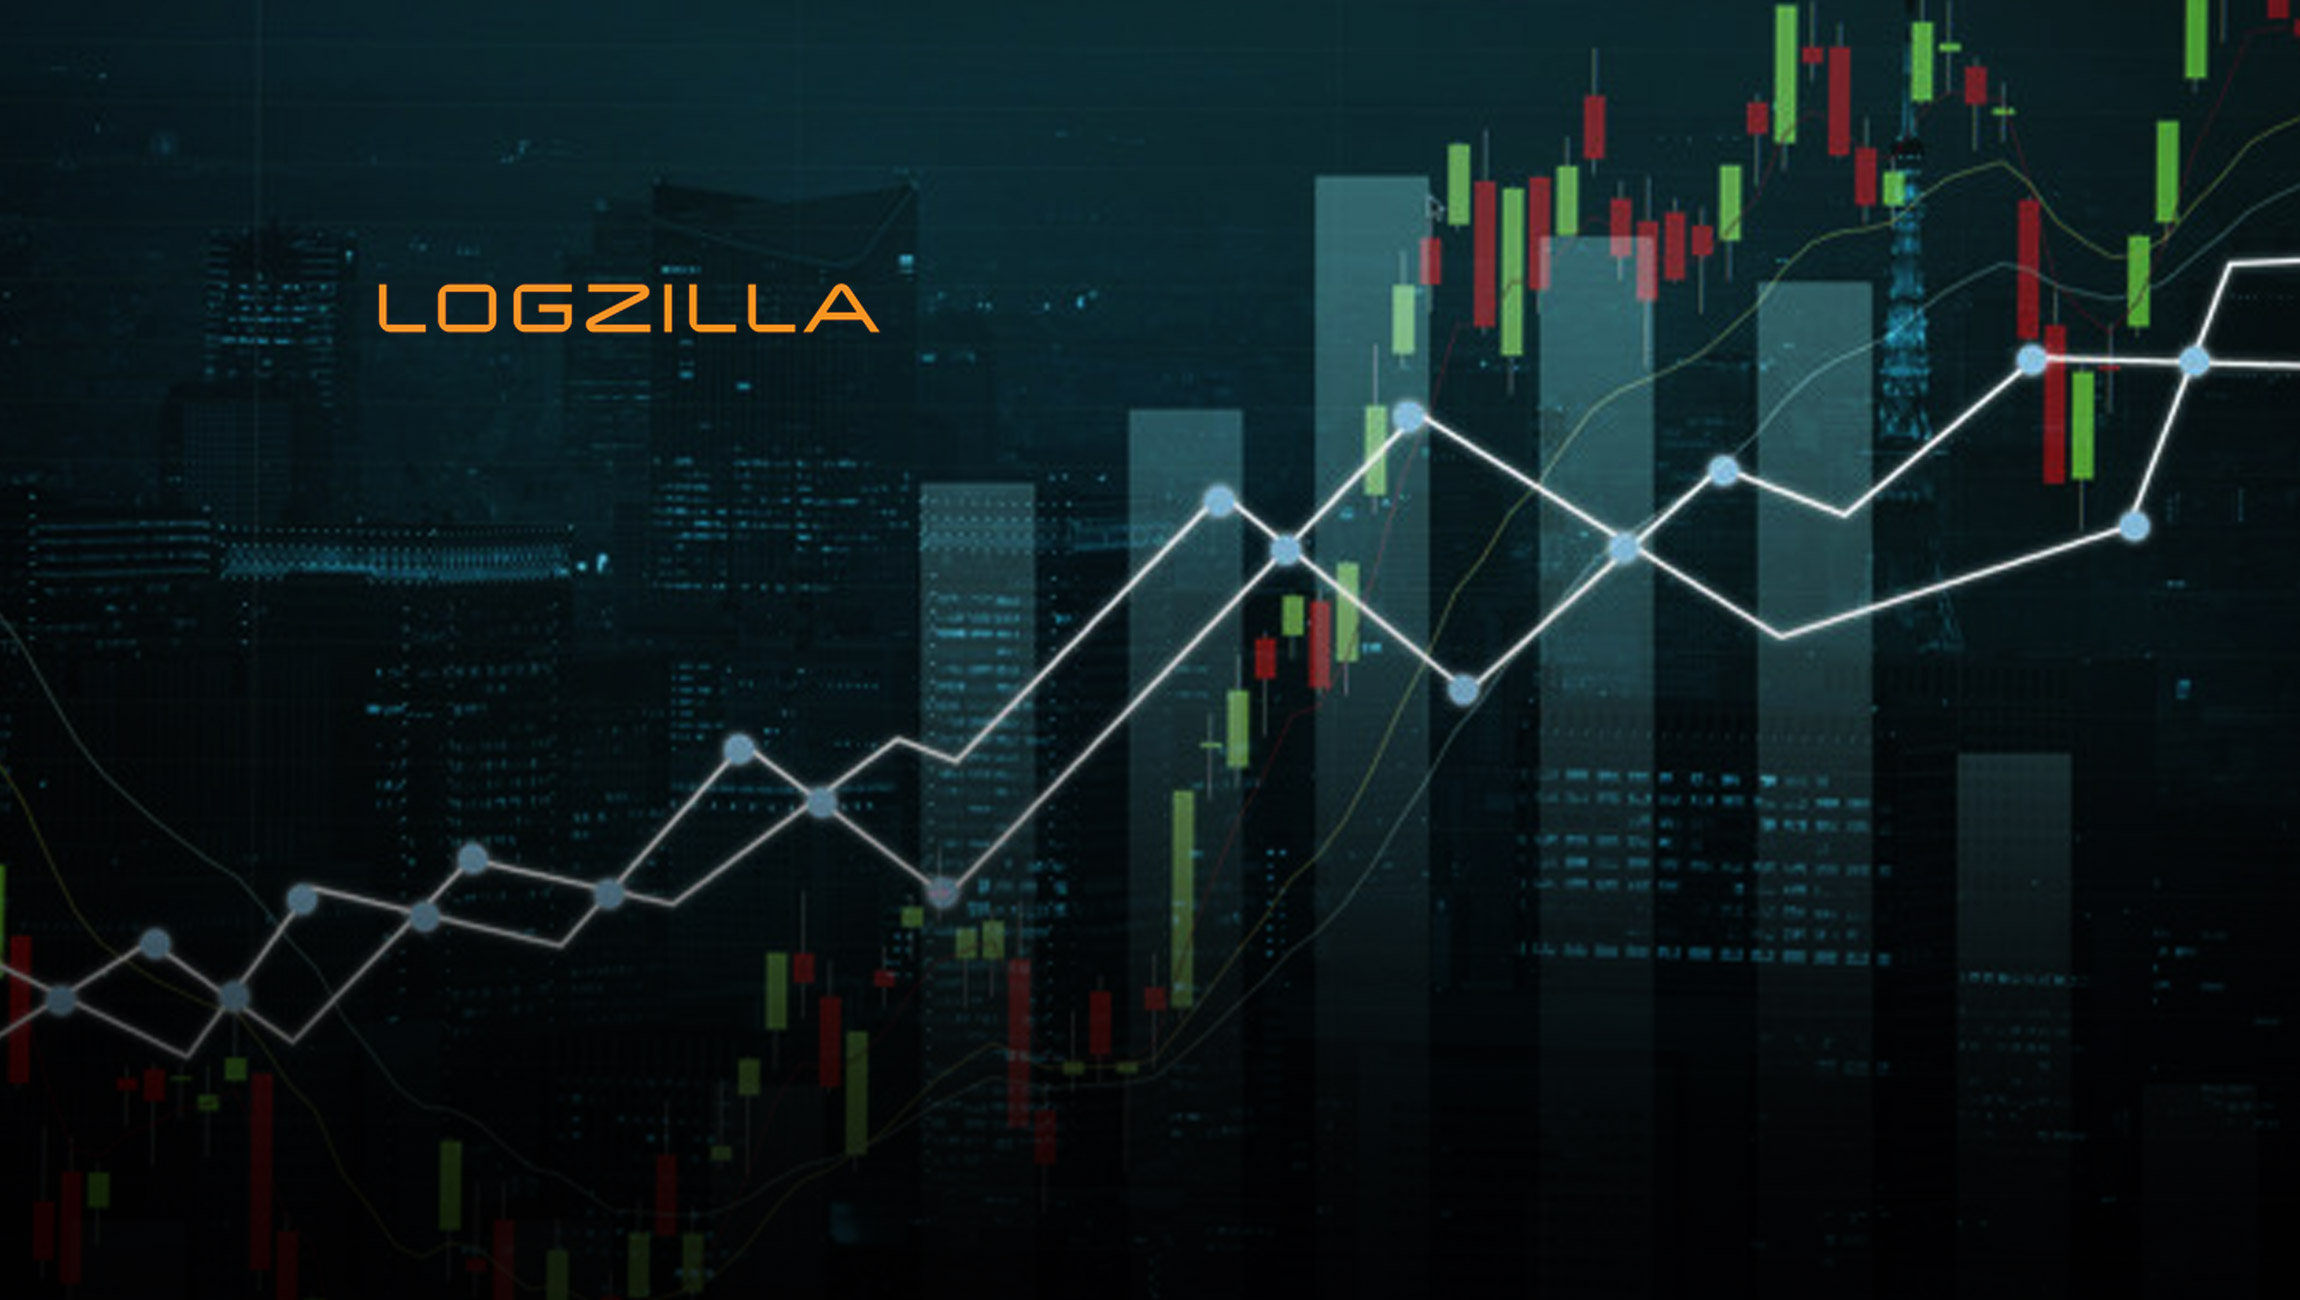 Data Analytics Remain Top Business Initiative for Retail and Finance to Mitigate New Digital Normal According to LogZilla's Log Tool Management Study